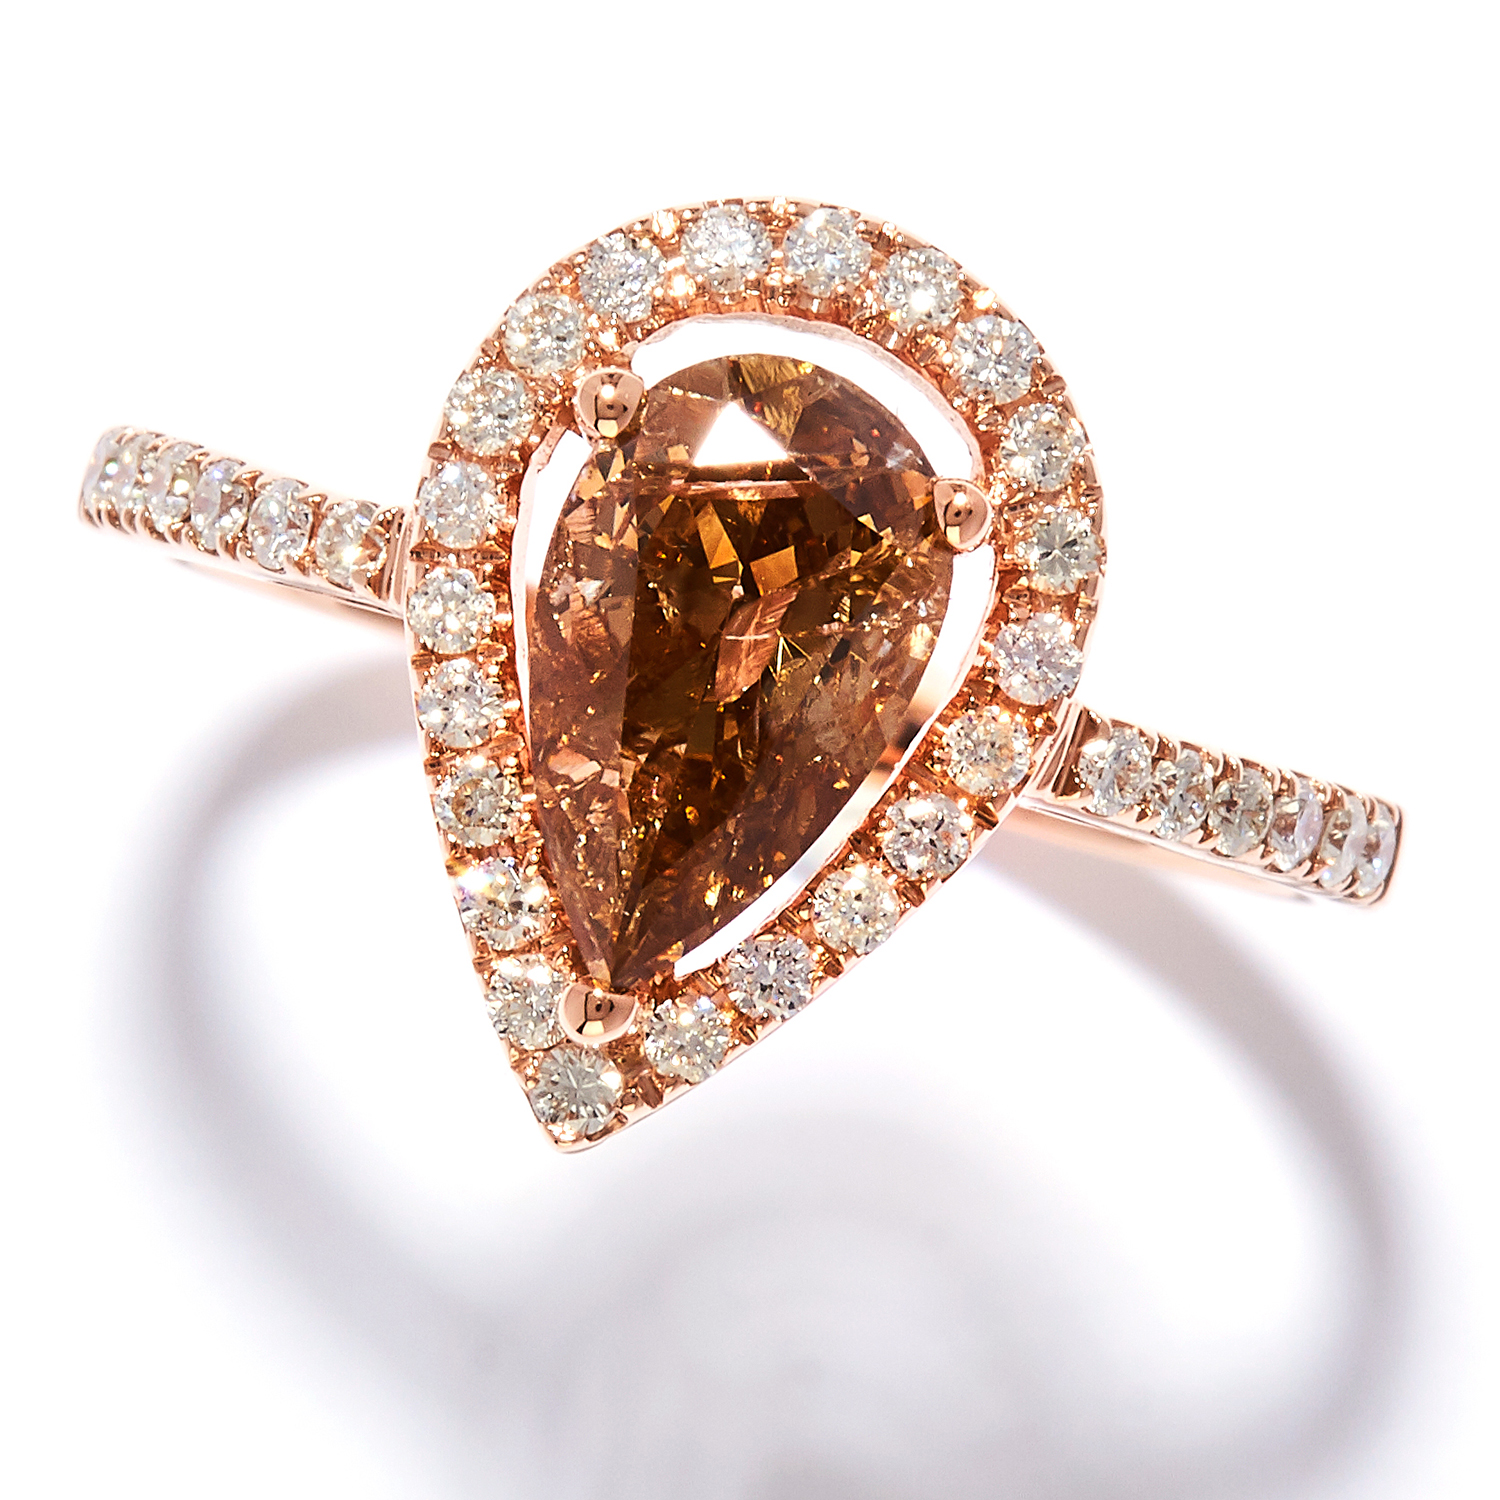 1.08 CARAT FANCY BROWN DIAMOND DRESS RING in 18ct rose gold, set with a pear cut brown diamond of